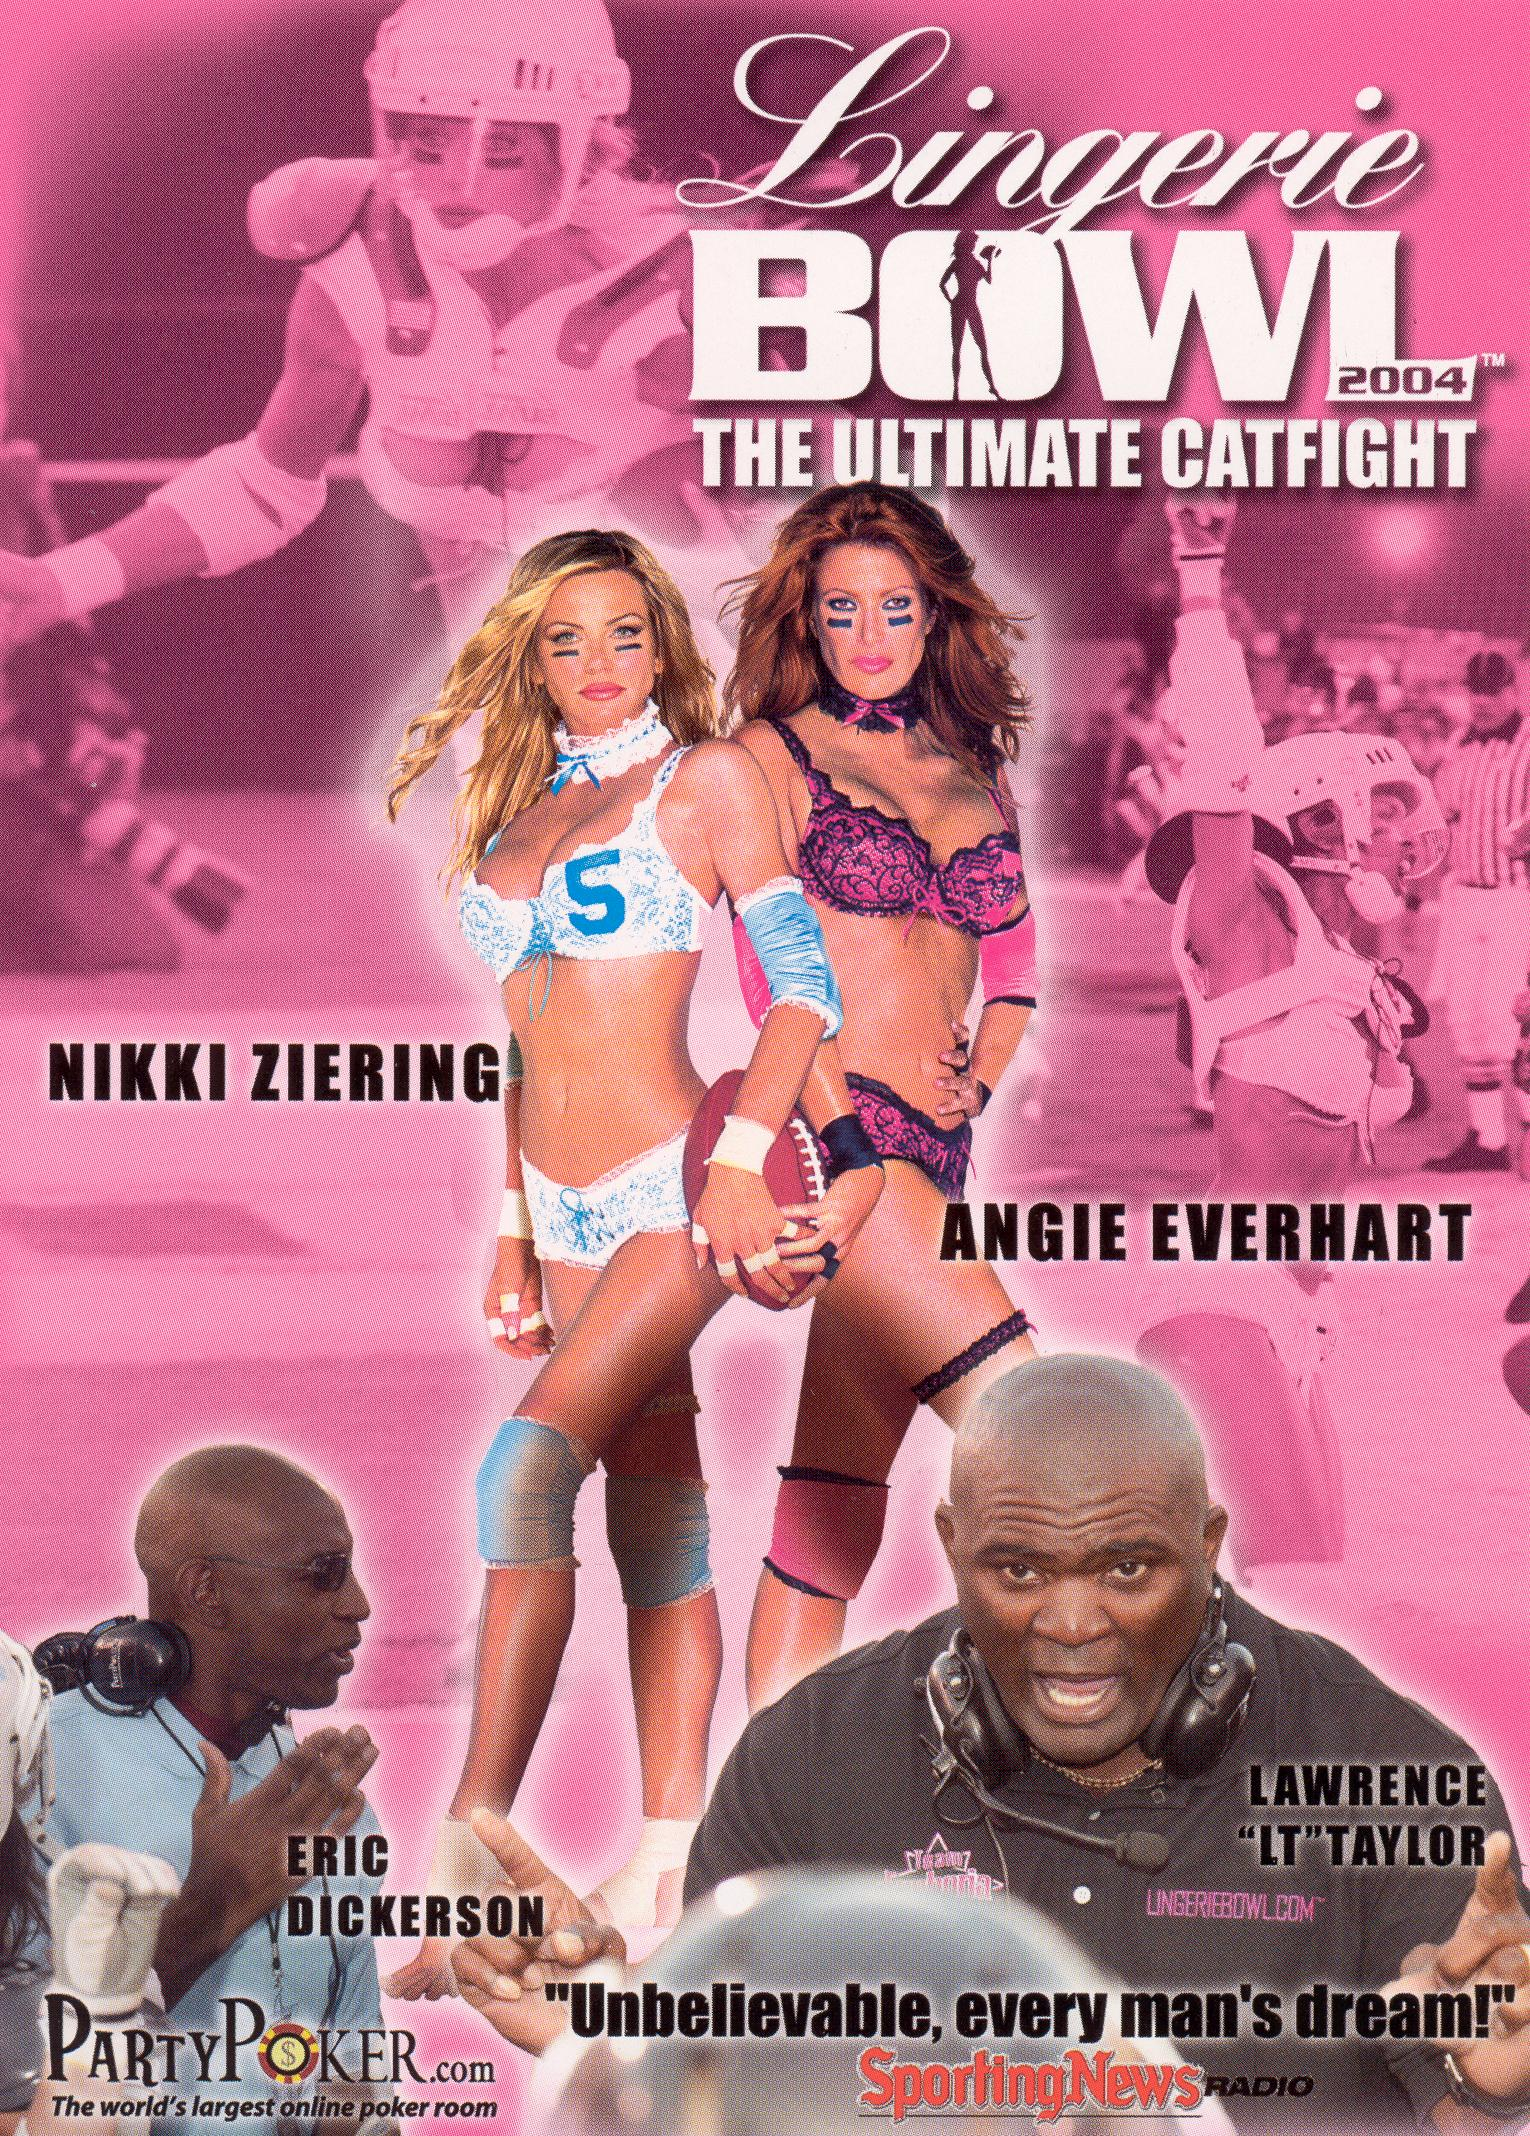 Lingerie Bowl 2004: The Ultimate Catfight